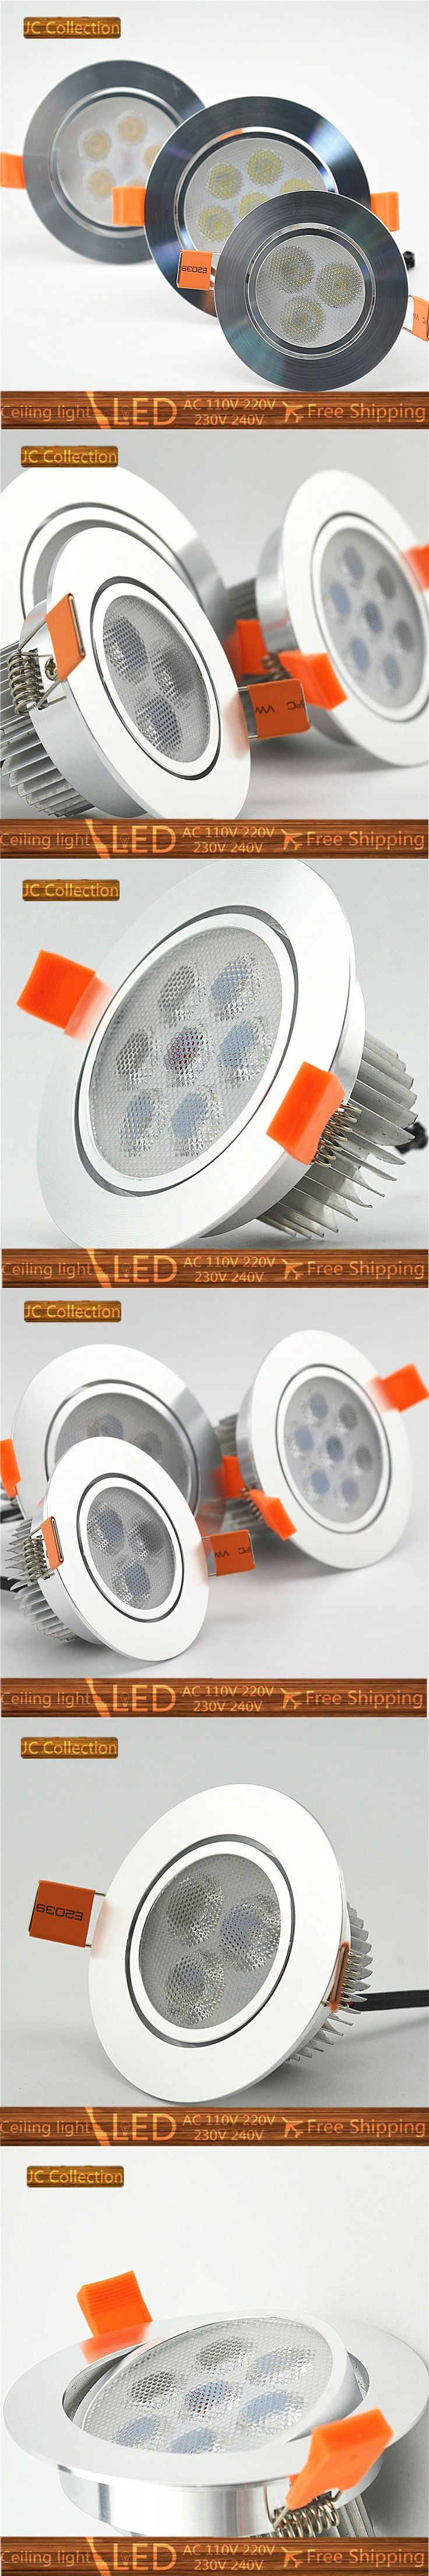 432f5a19269098b25231631ae9b6460a--led-spotlight-bulbs-led-ceiling-lights Wunderbar Led Mr11 Gu4 Warmweiss Dekorationen